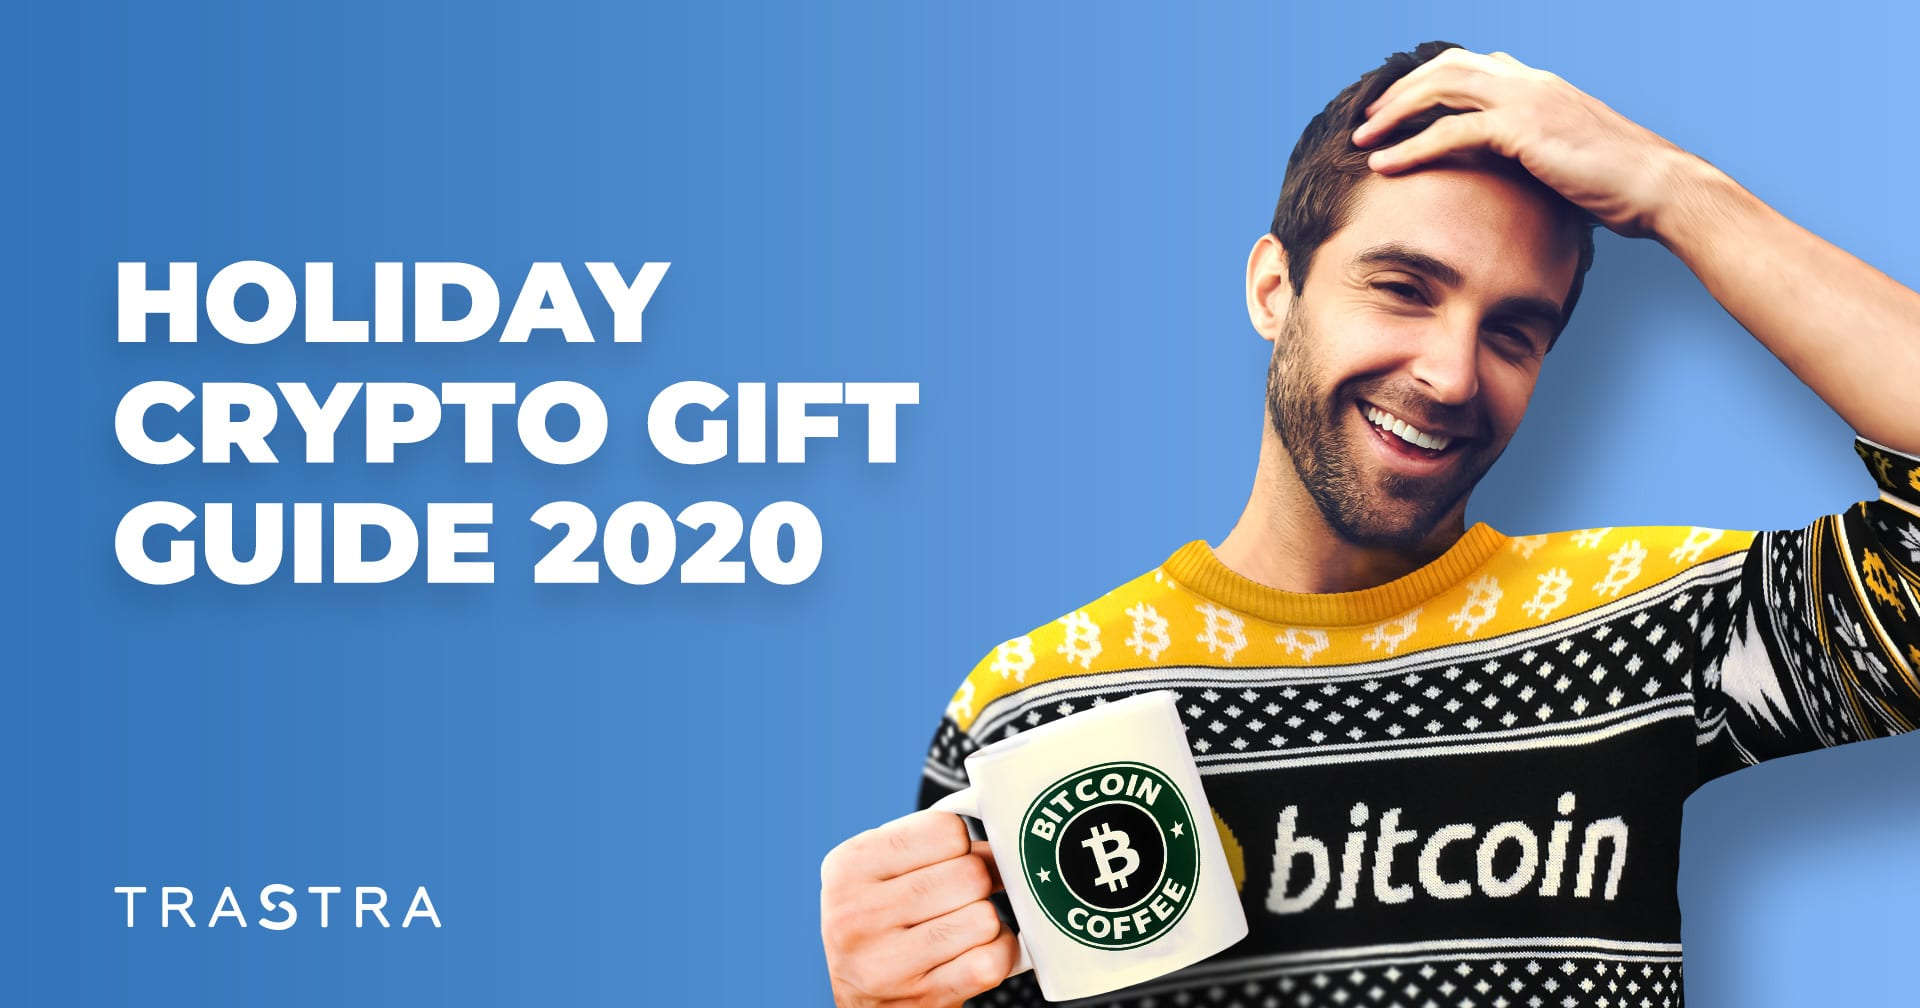 christmas crypto gifts, christmas bitcoin, gifts, сhristmas purchases, places to spend crypto, places to spend bitcoin, christmas crypto purchases, shop with crypto, shop with bitcoin, places accept crypto, places accept bitcoin, crypto payments, bitcoin payments, use trastra card, online crypto purchases, offline crypto purchases, christmas shopping, buy gifts with trastra card, bitcoin, litecoin, ethereum, ripple, bitcoin cash